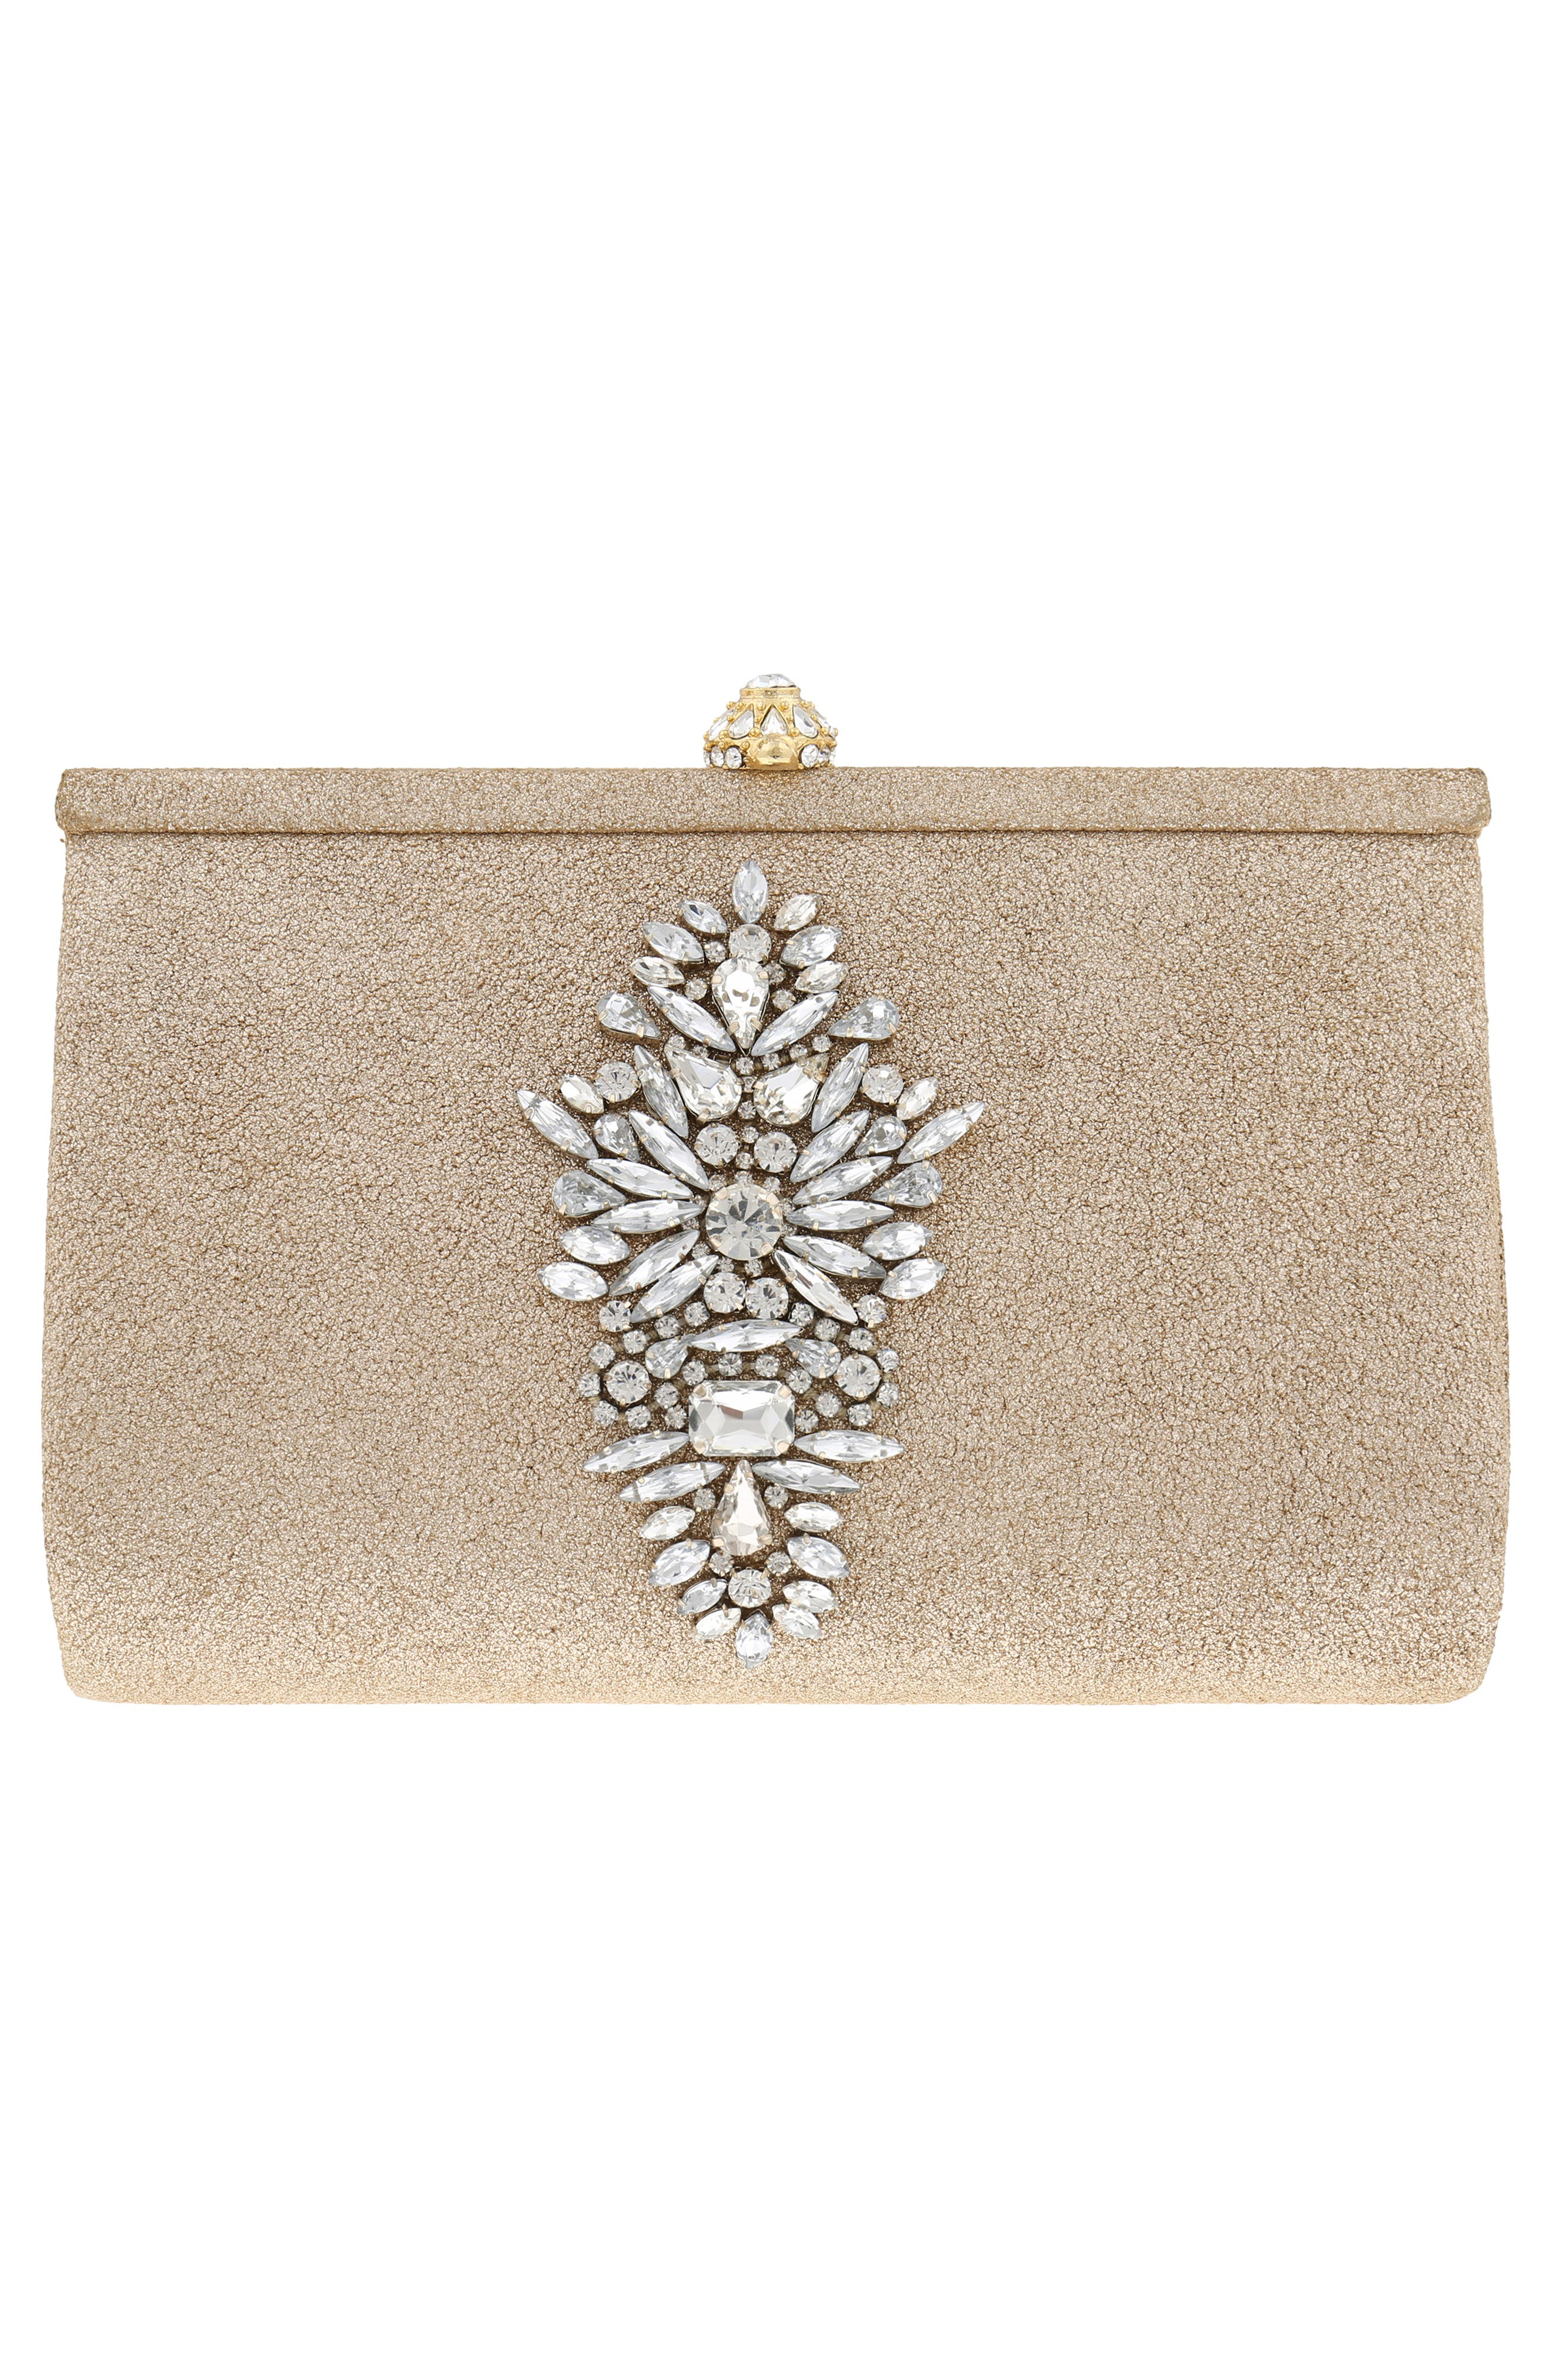 Galaxy Embellished Clutch,                             Alternate thumbnail 5, color,                             PLATINO